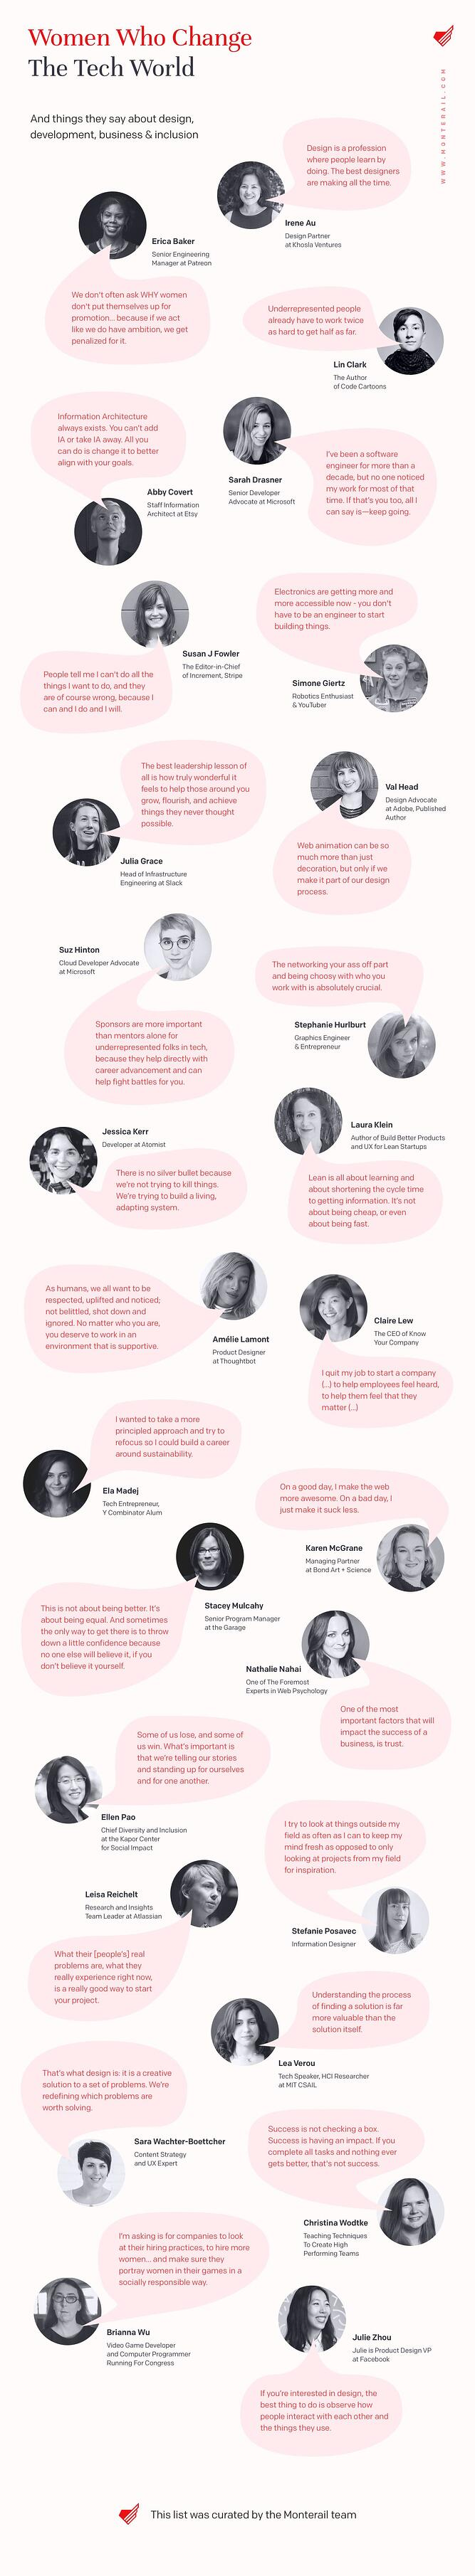 Infographic: Women Who Change The Tech World